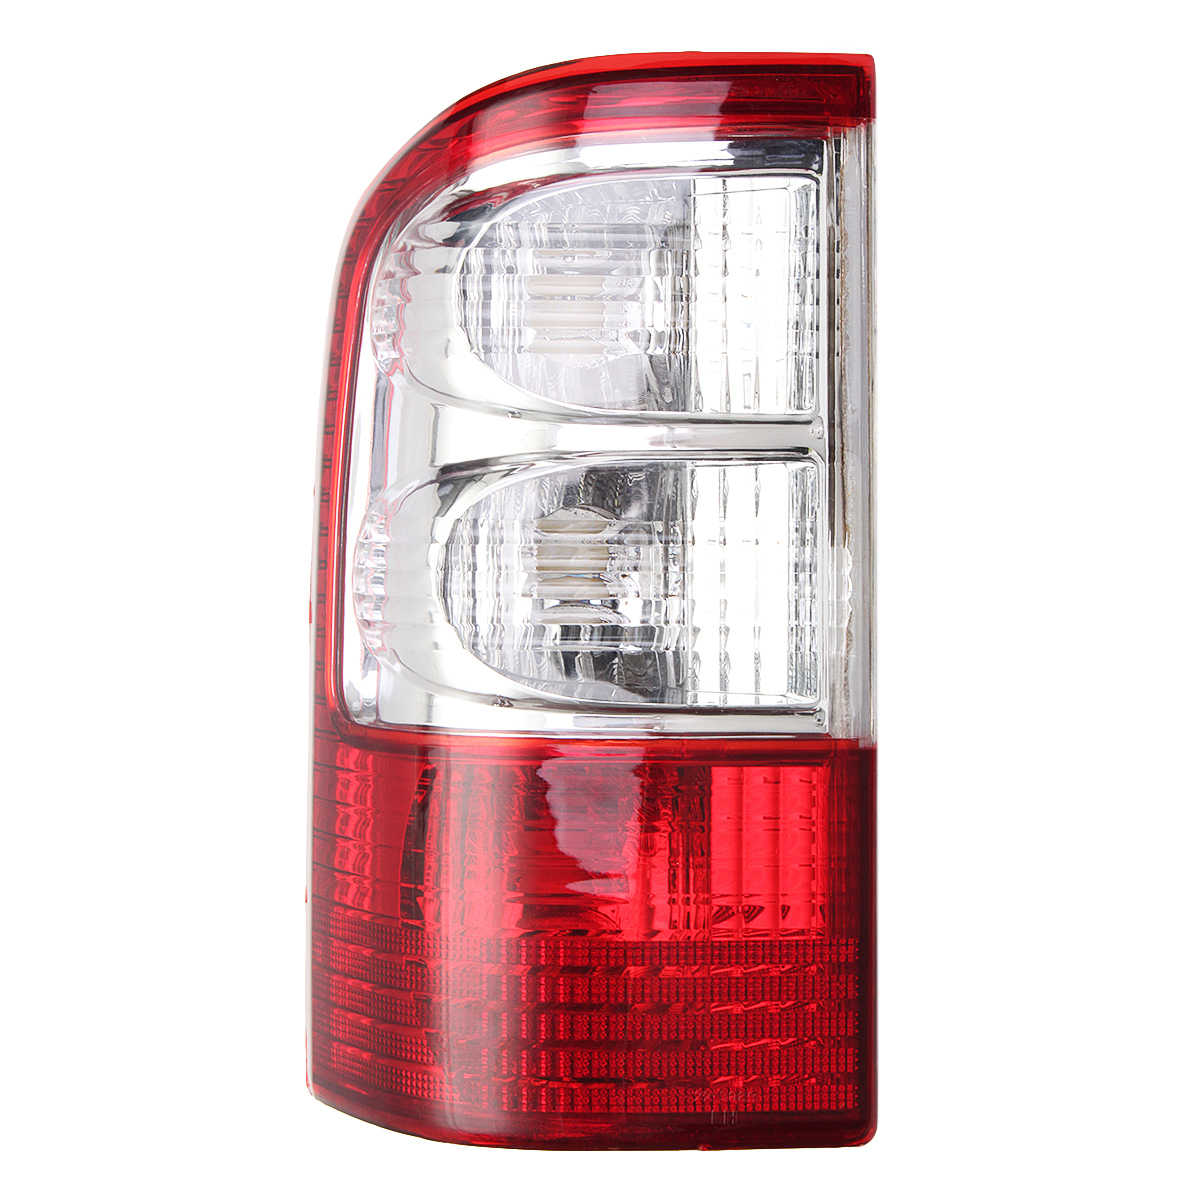 small resolution of  tail light brake lamp w wire harness for nissan patrol gu series 2 2001 2002